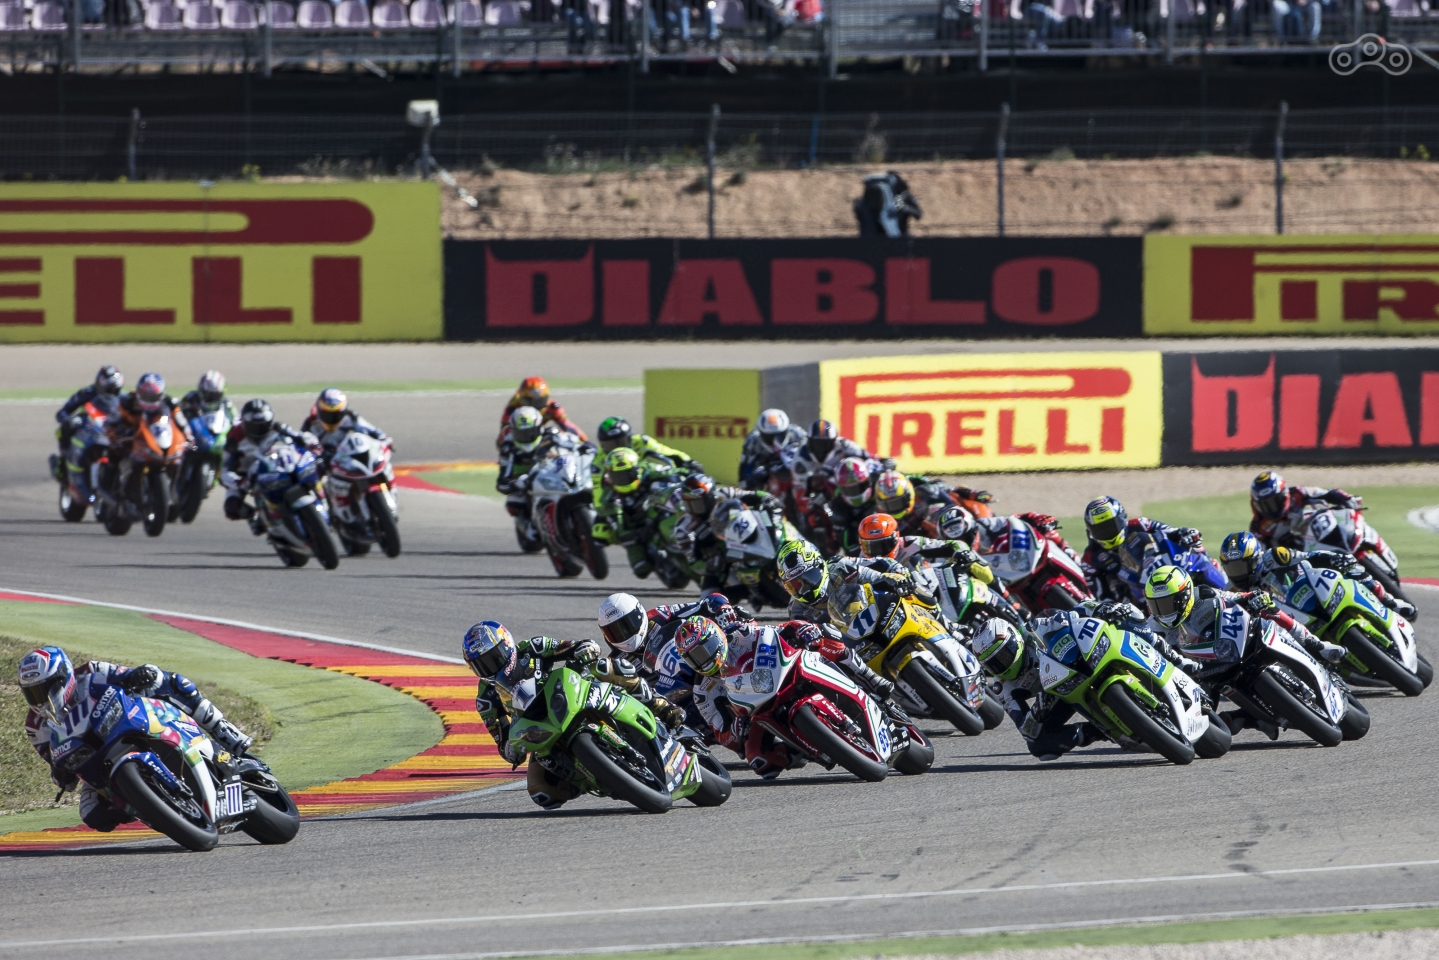 Заезд категории World SuperSport во время этапа WSBK 2017 в Арагоне. Фото – Kawasaki racing